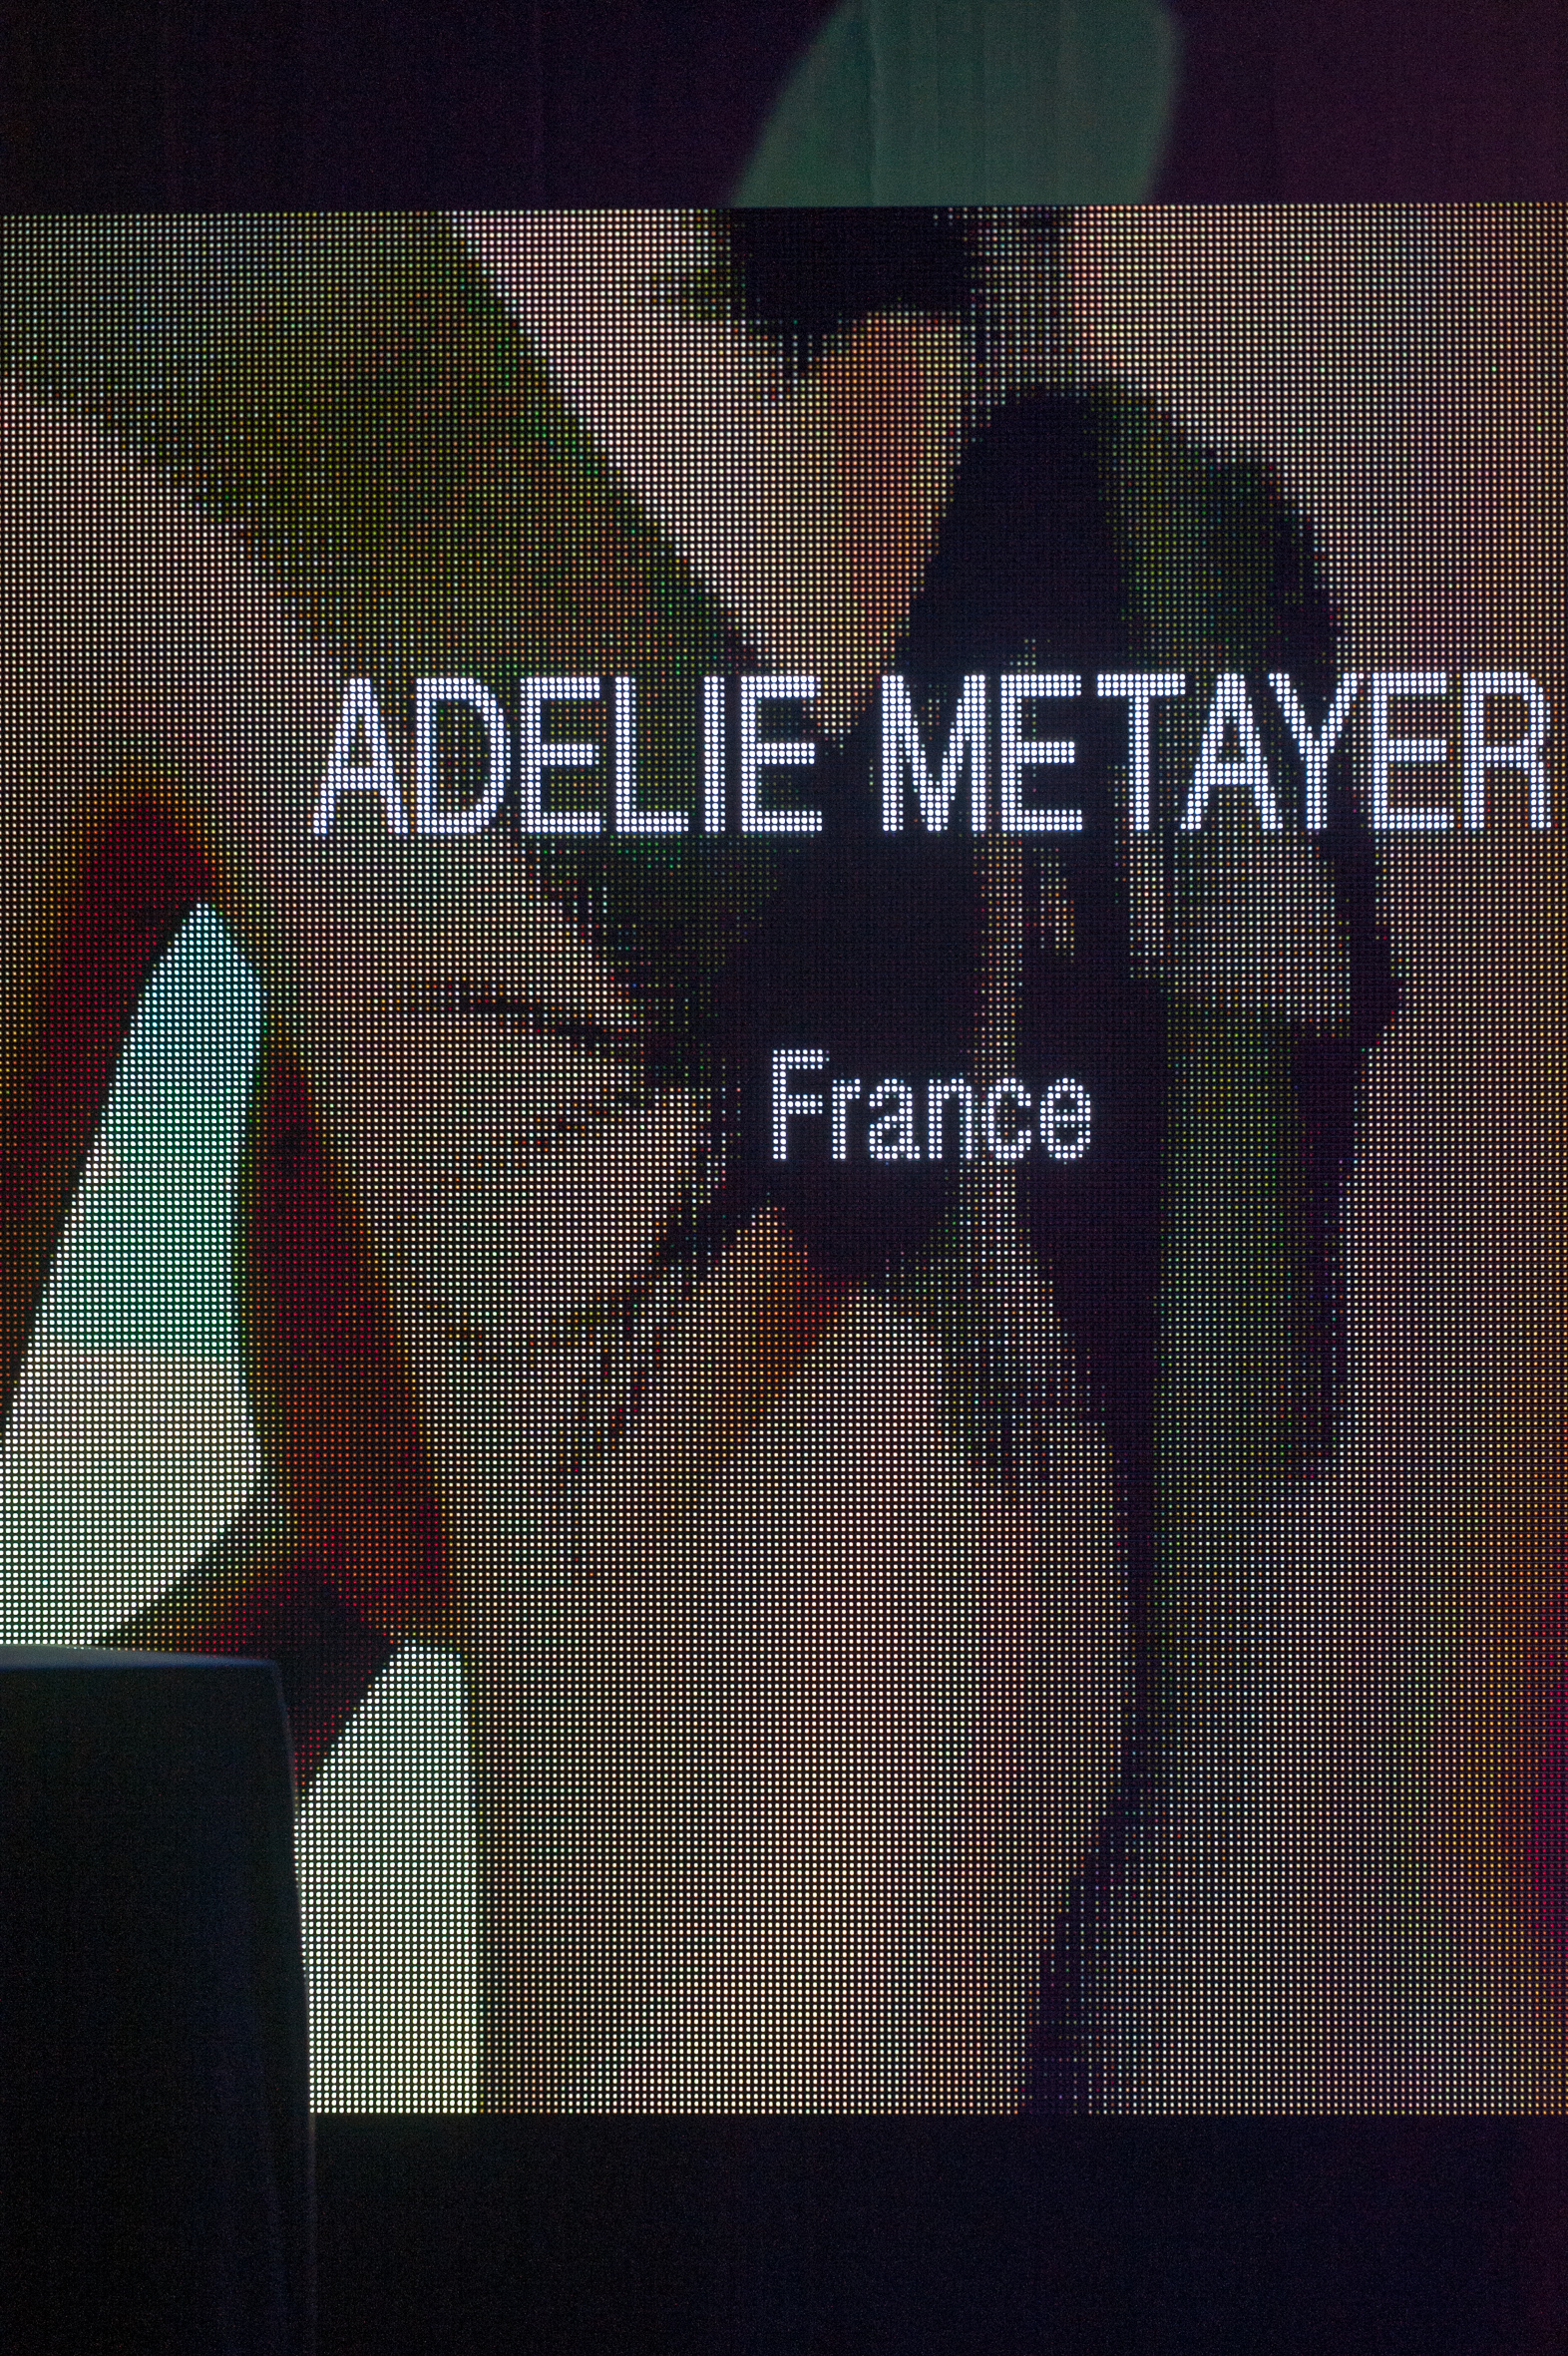 Adelie Metayer